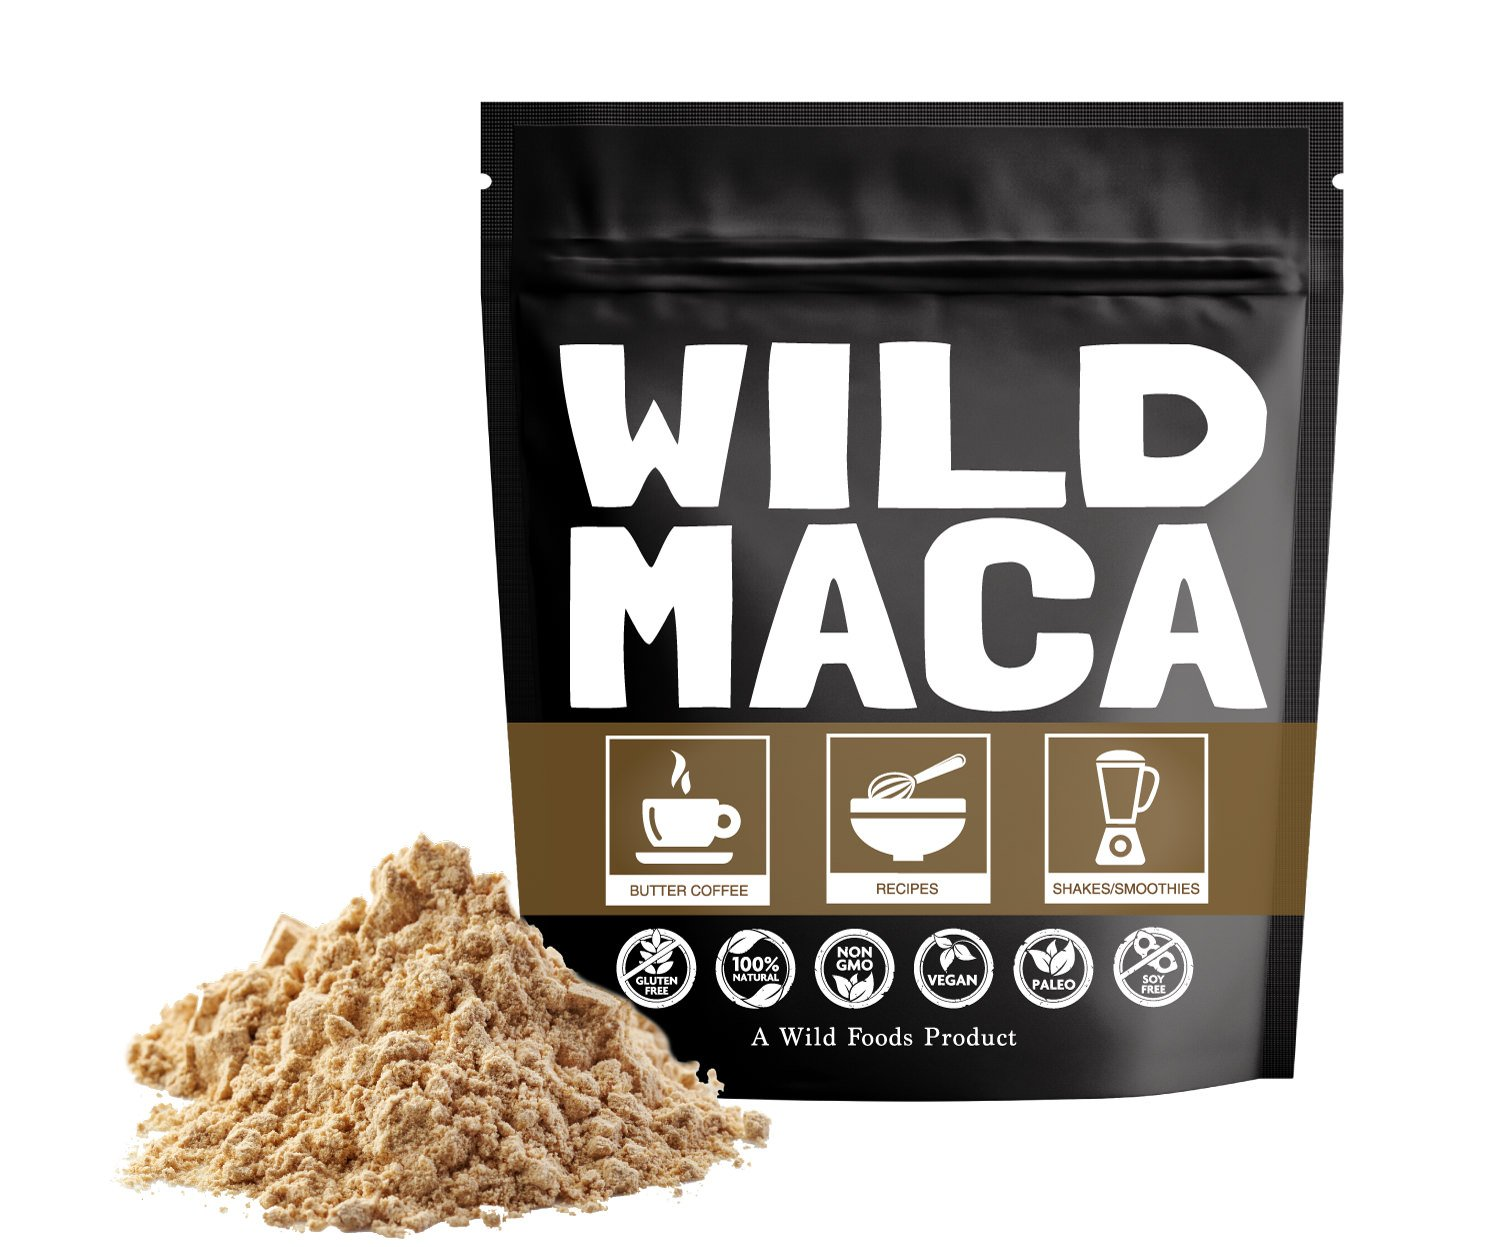 Wild Maca Powder, Raw Maca Powder from Peru Made From 100% Natural Organically Grown Hand-processed Maca by small Farmers (24 ounce)